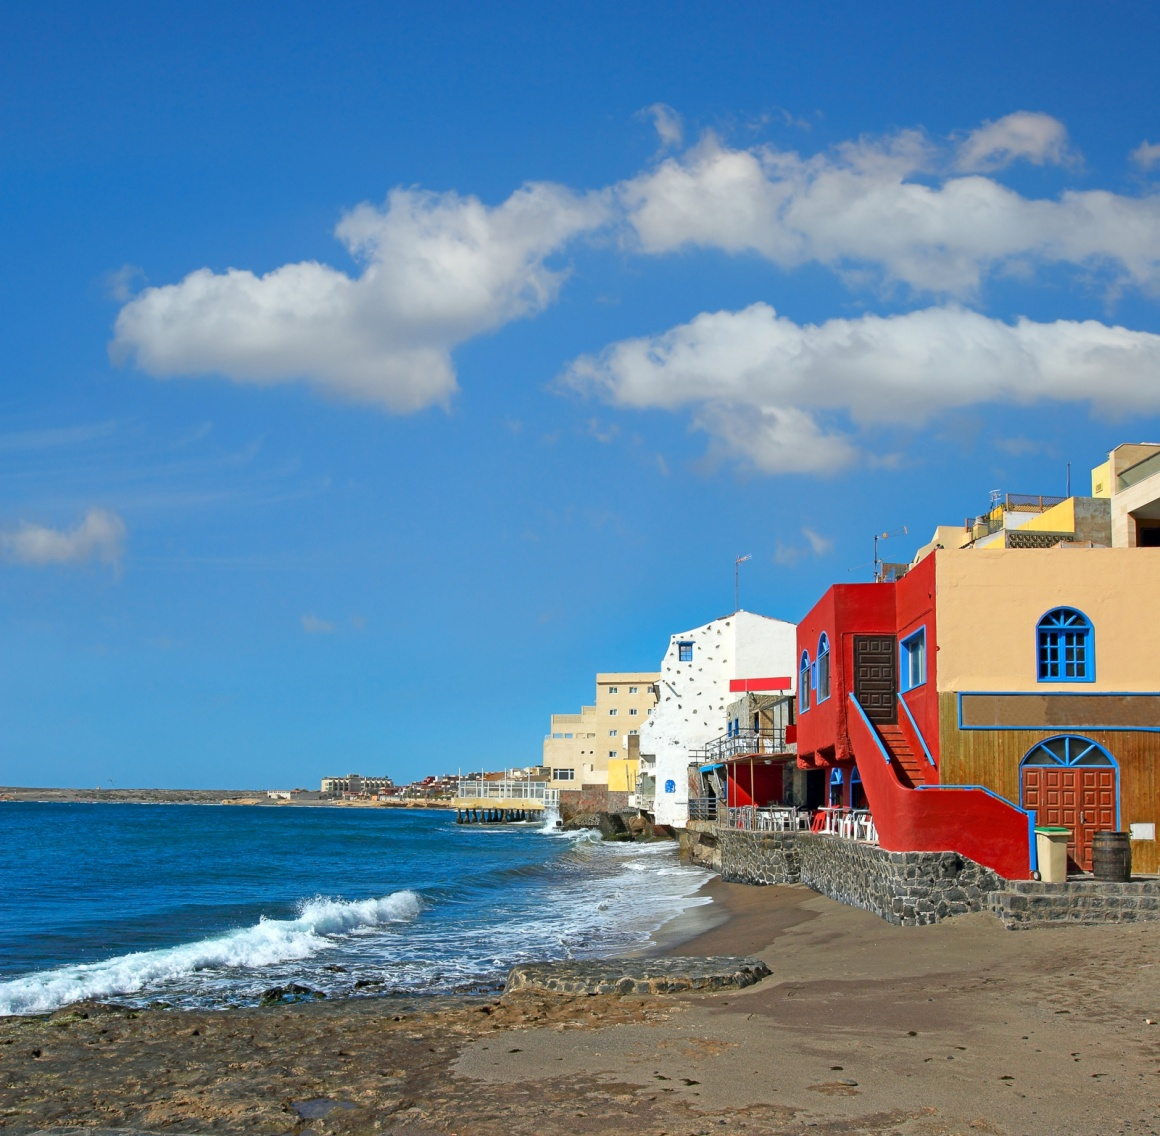 'Coast in the tourist resort Medano, Tenerife, Canary Islands, Spain' - Tenerife